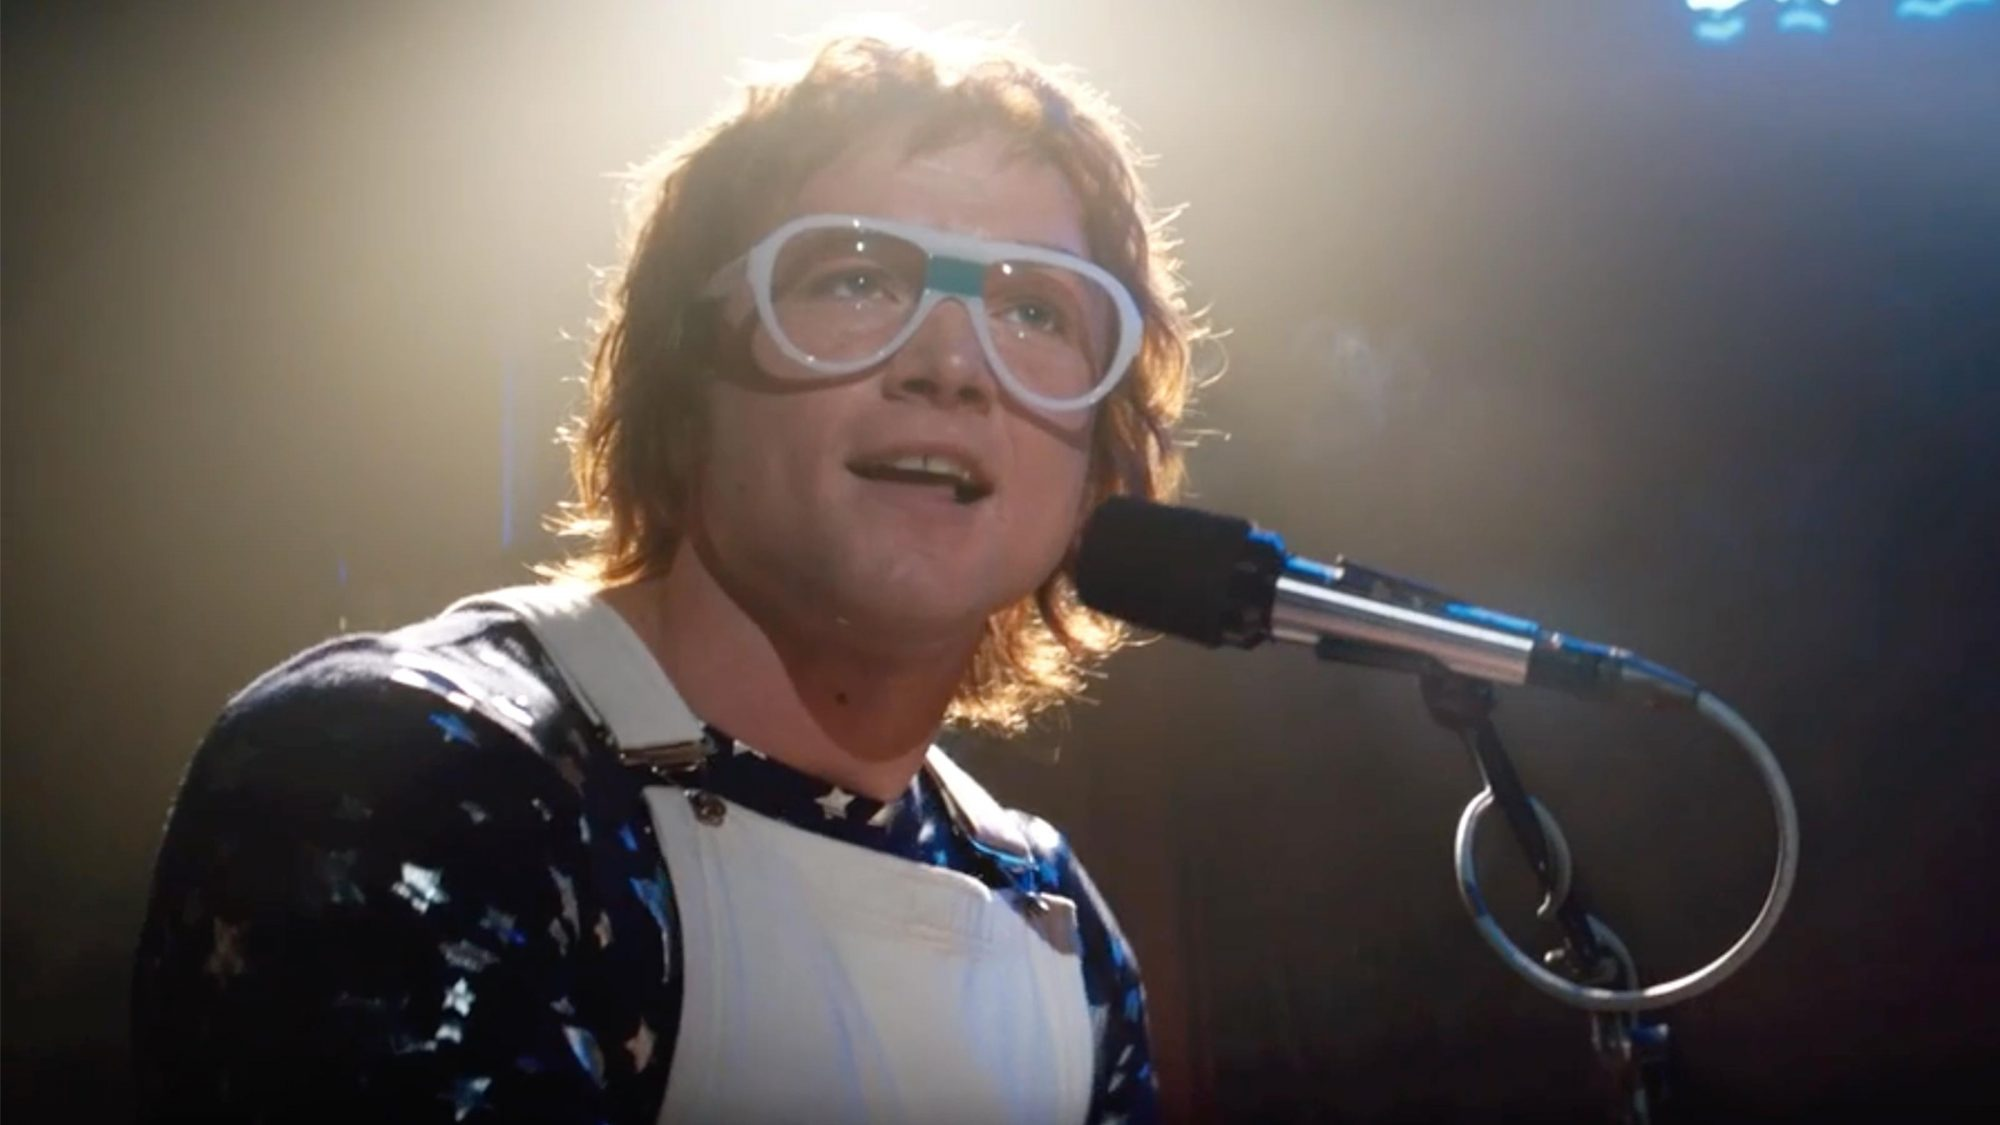 Taron Egerton as Elton John in Rocketman from Paramount Pictures. (screen grab)